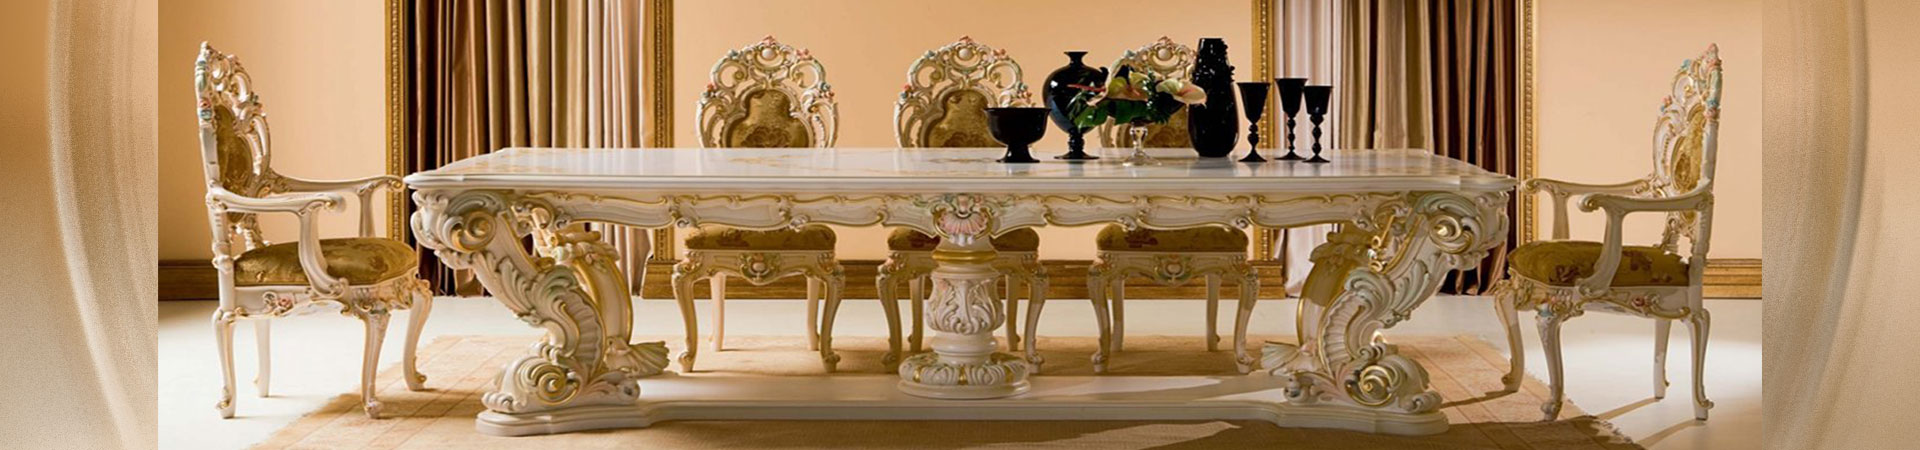 Classic Furniture Design - Antique Carved and Painted Finish